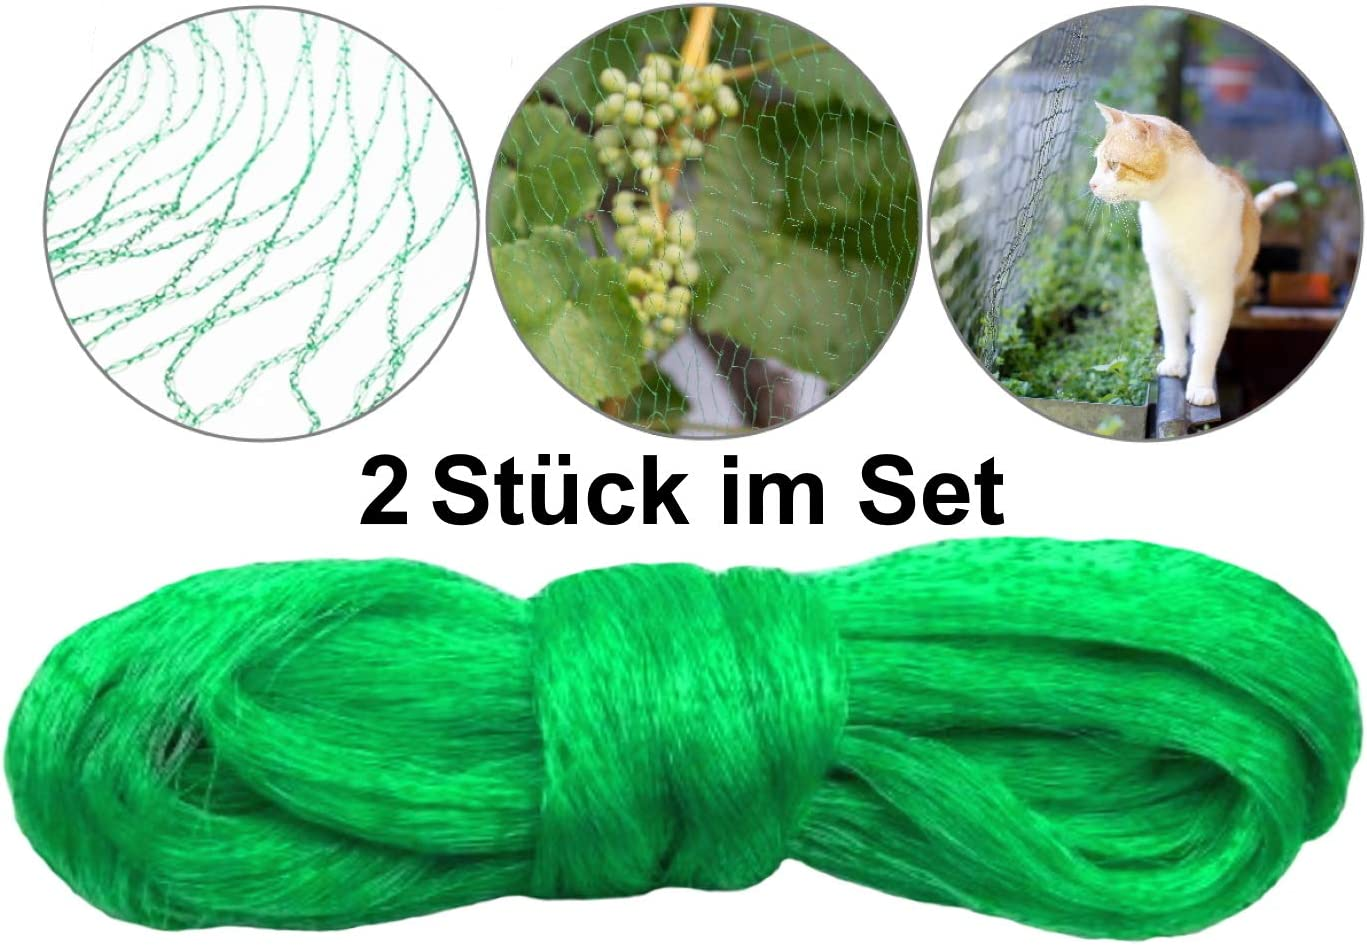 O/&W Security Set 4X Bird Protection Net Pond Net Cat Net for Protection Against Bird Repellent Fruit Tree Net Balcony Net Tight Mesh Robust Fabric UV and Weather Resistant 4 x 5 Metres Dark Green